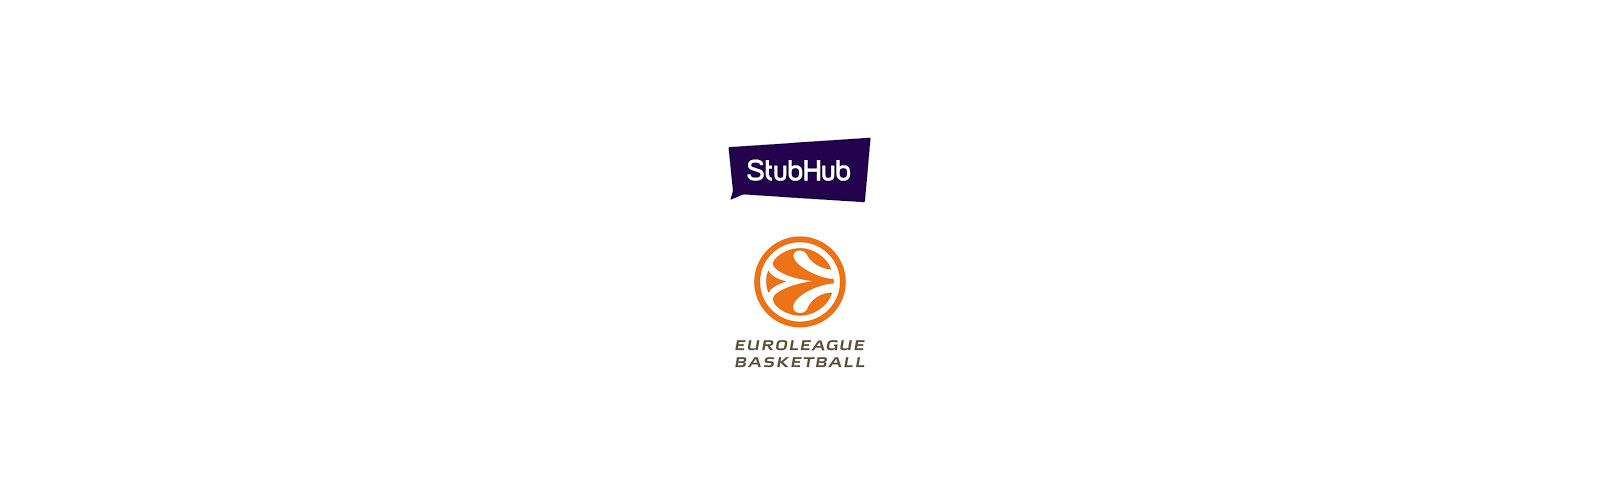 stubhub-euroleague-basketball